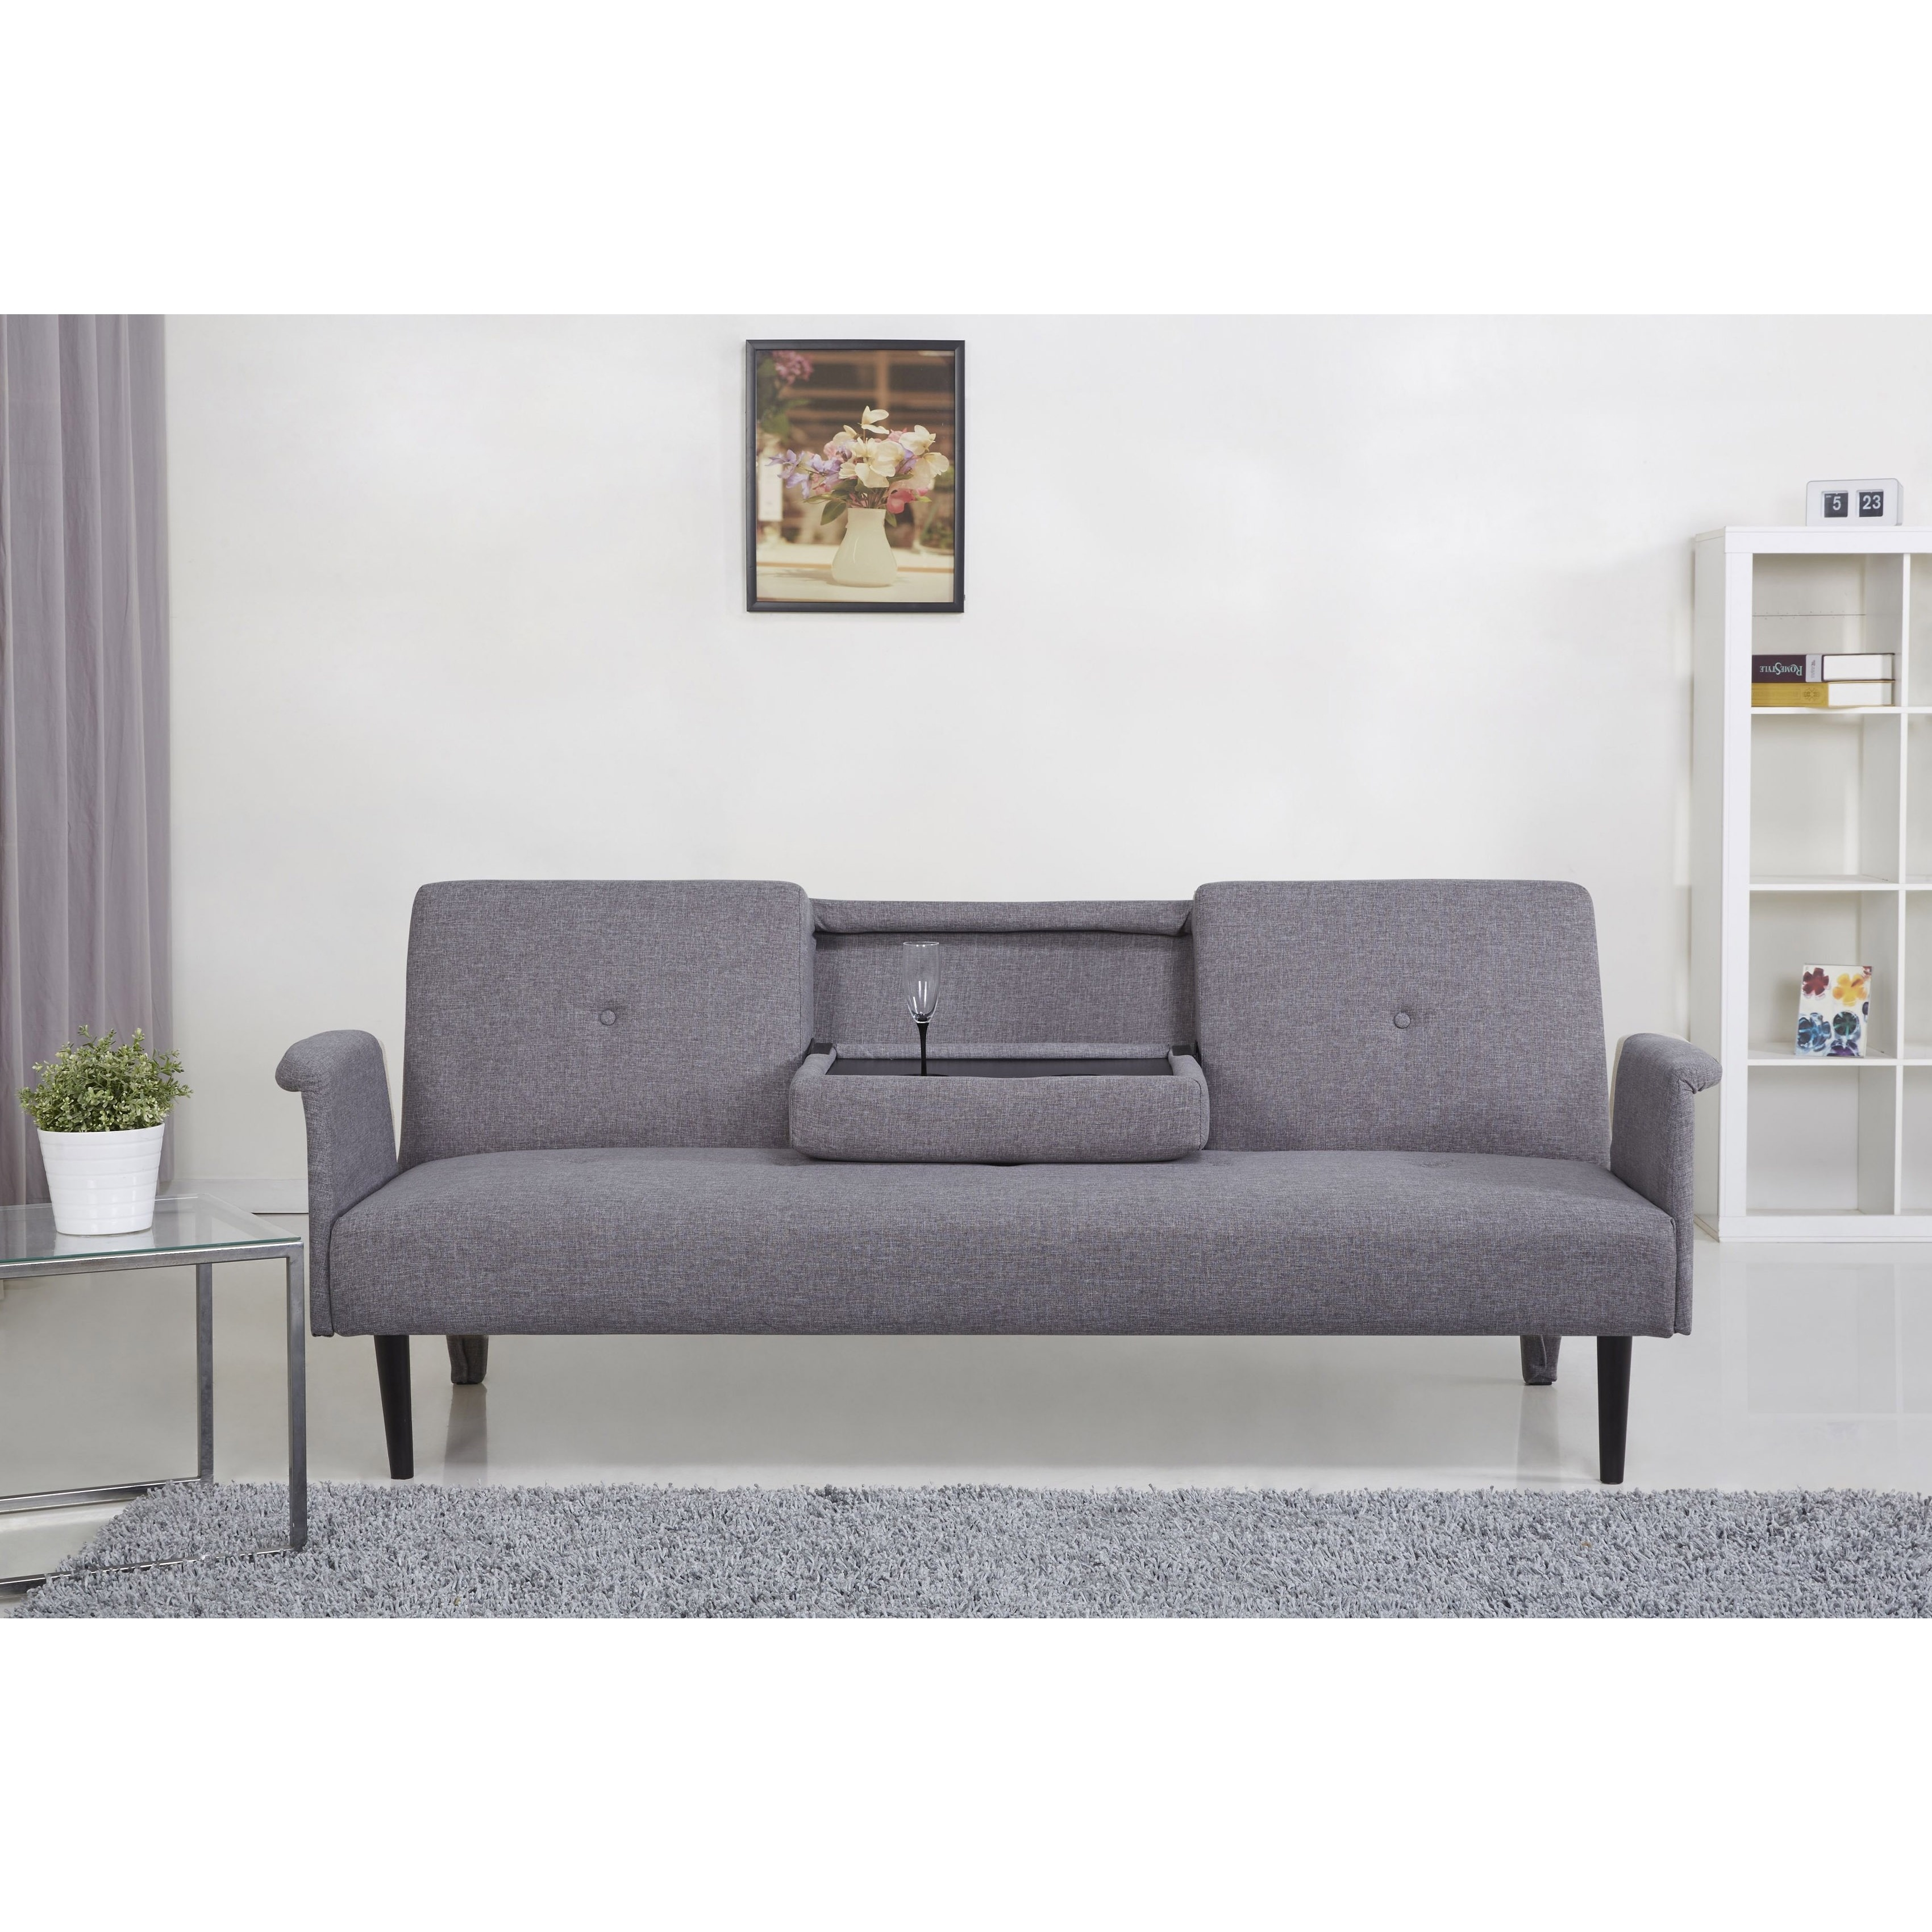 Gold Sparrow Cambridge Ash Convertible Sofa Bed, Grey